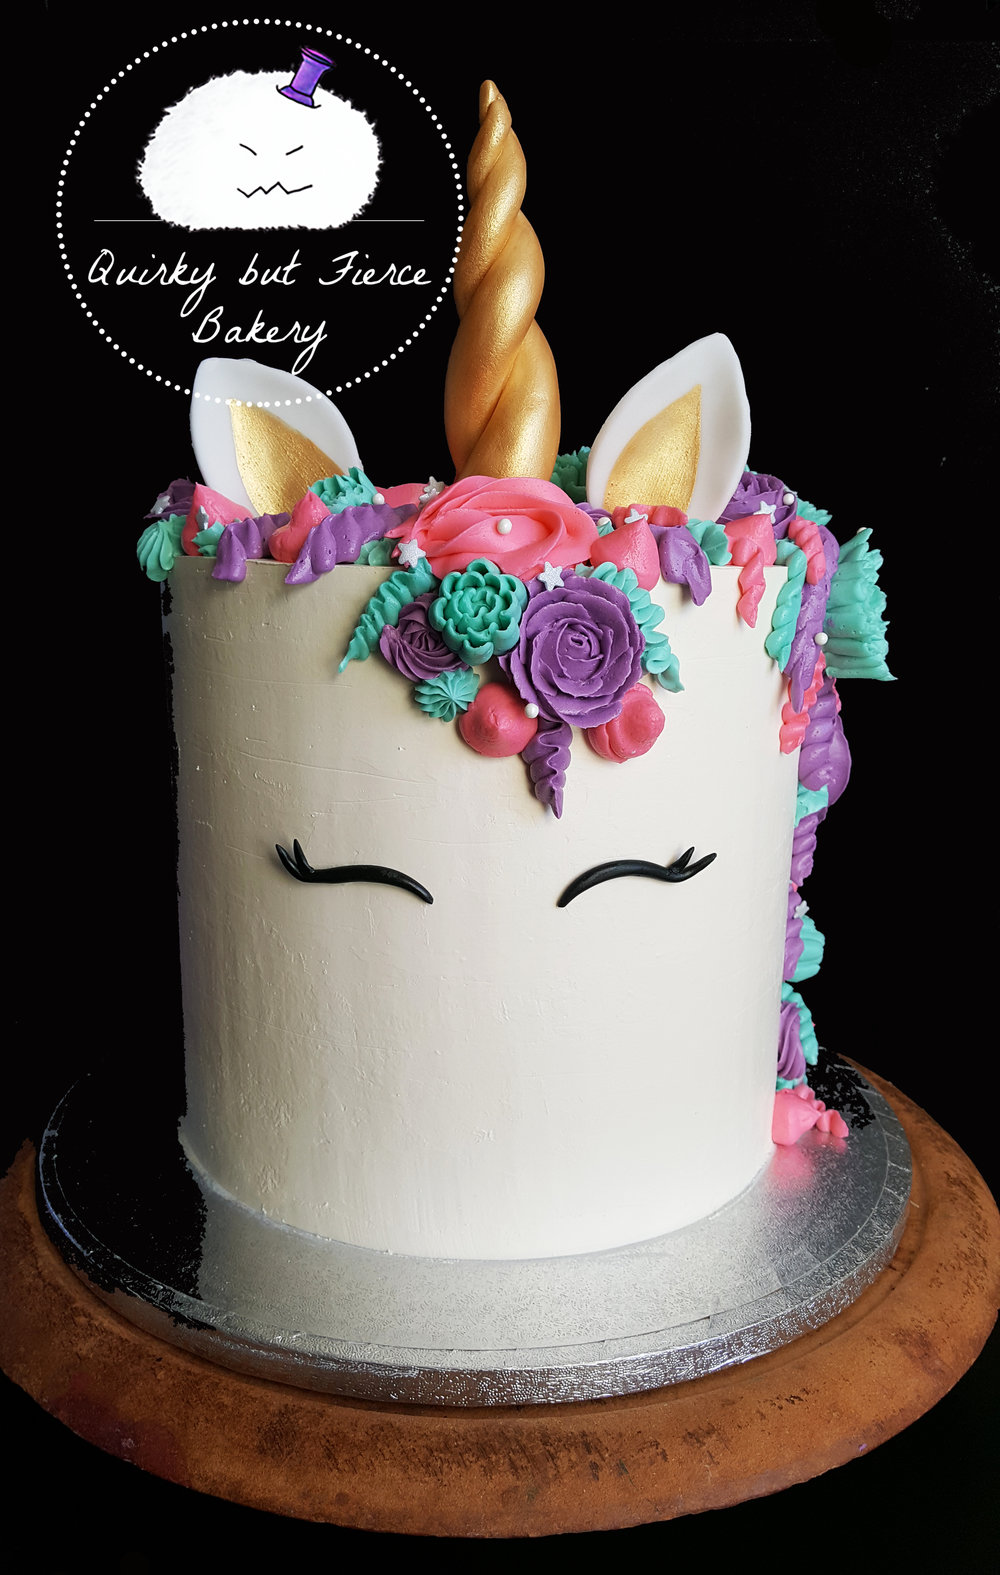 "UNICORN BEAUTY   Will unicorns ever go out of fashion? Never! This is an extended tier cake, standing at 8""!   Because the cake is so tall, the servings for each size are as follows:   6"" ~ 20+ / 8"" ~40+ / 10""~60+ / 12"" ~ 100+  6"" - £55 / 8"" - £75 / 10"" - £95  / 12"" - £115   Upgades:   - Confetti sponge layers (Vanilla or lemon only) - £5  - Hidden confetti chamber - £10  - Rainbow sponge layers - £20"